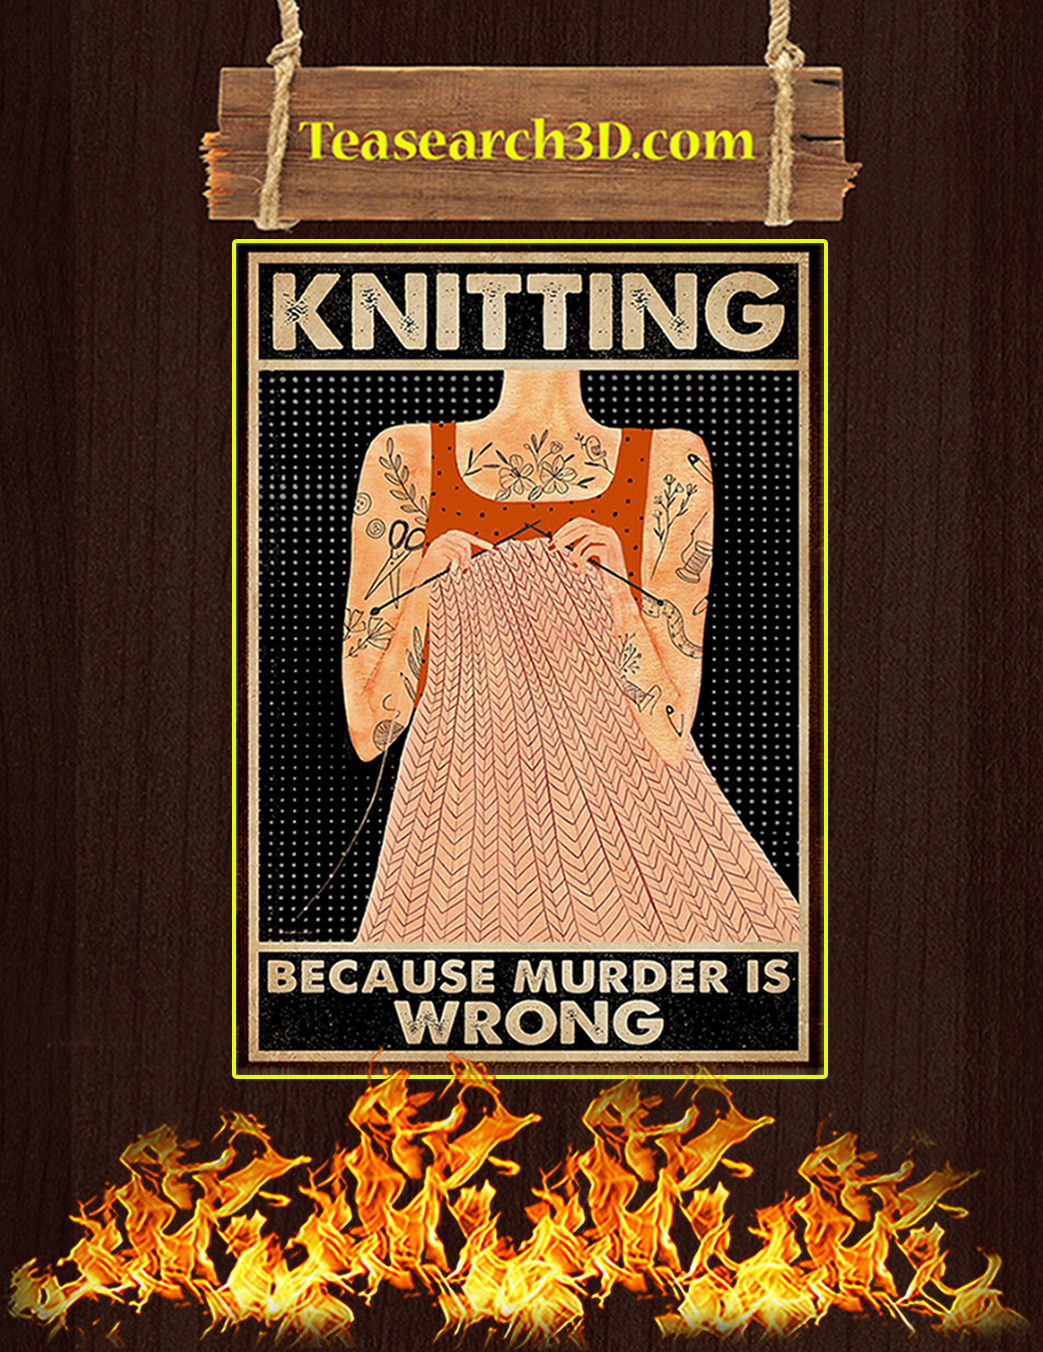 Tattoo girl knitting because murder is wrong poster A1